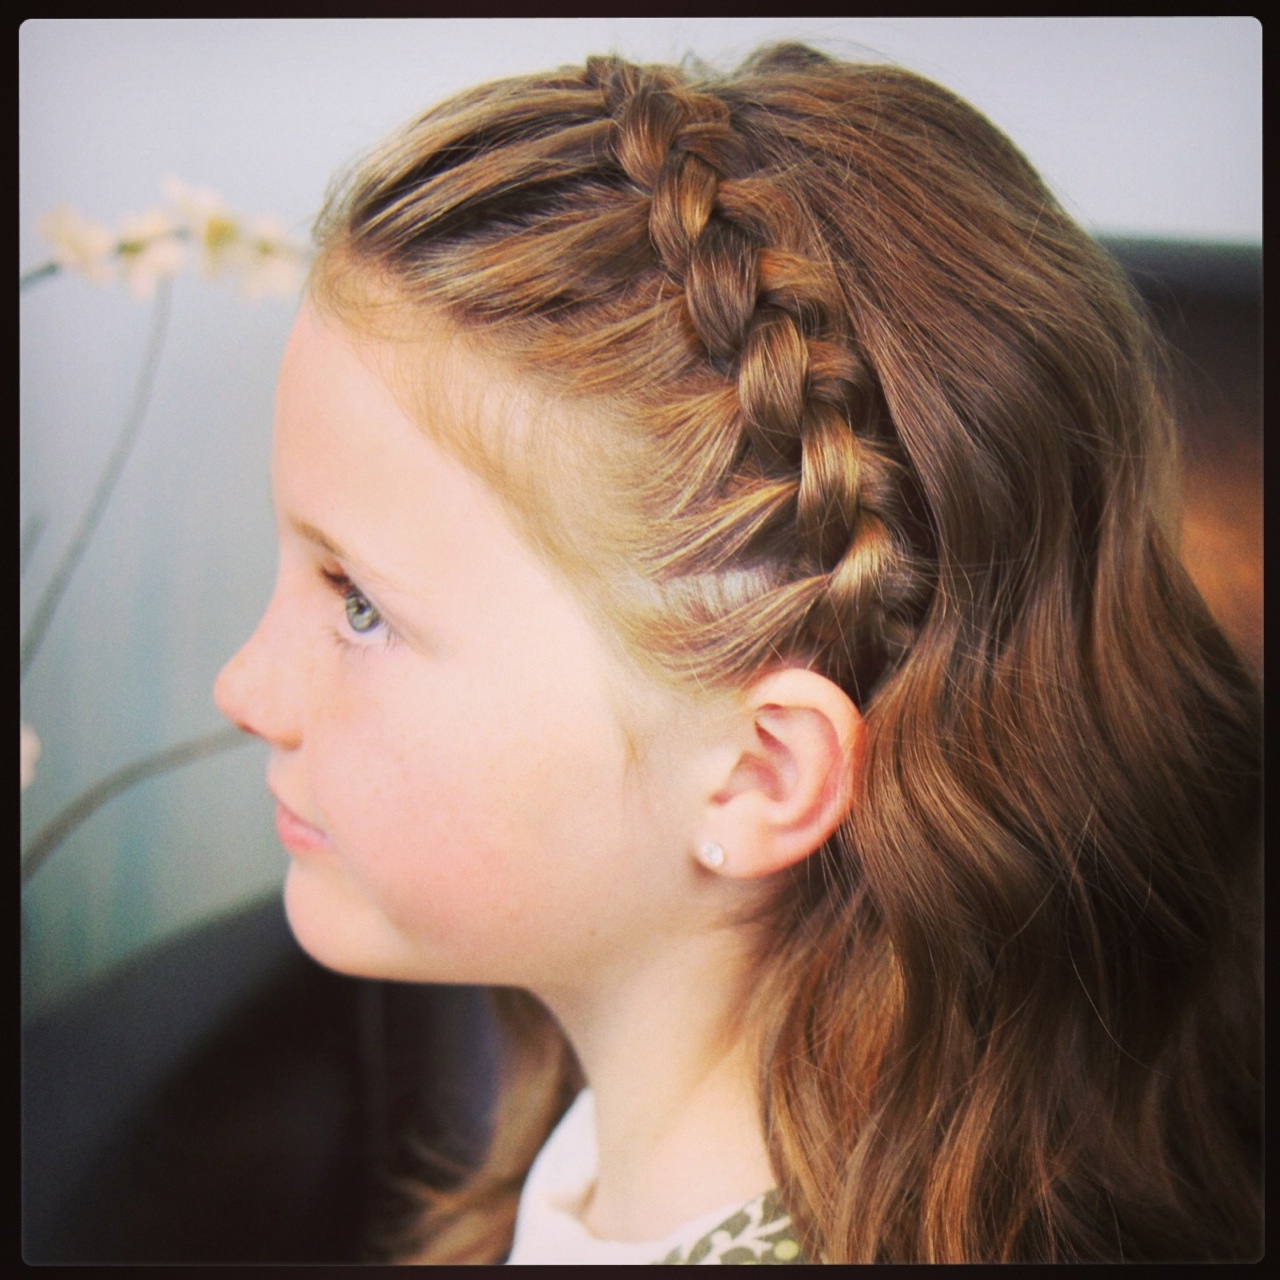 Braid Hairstyles (View 2 of 20)